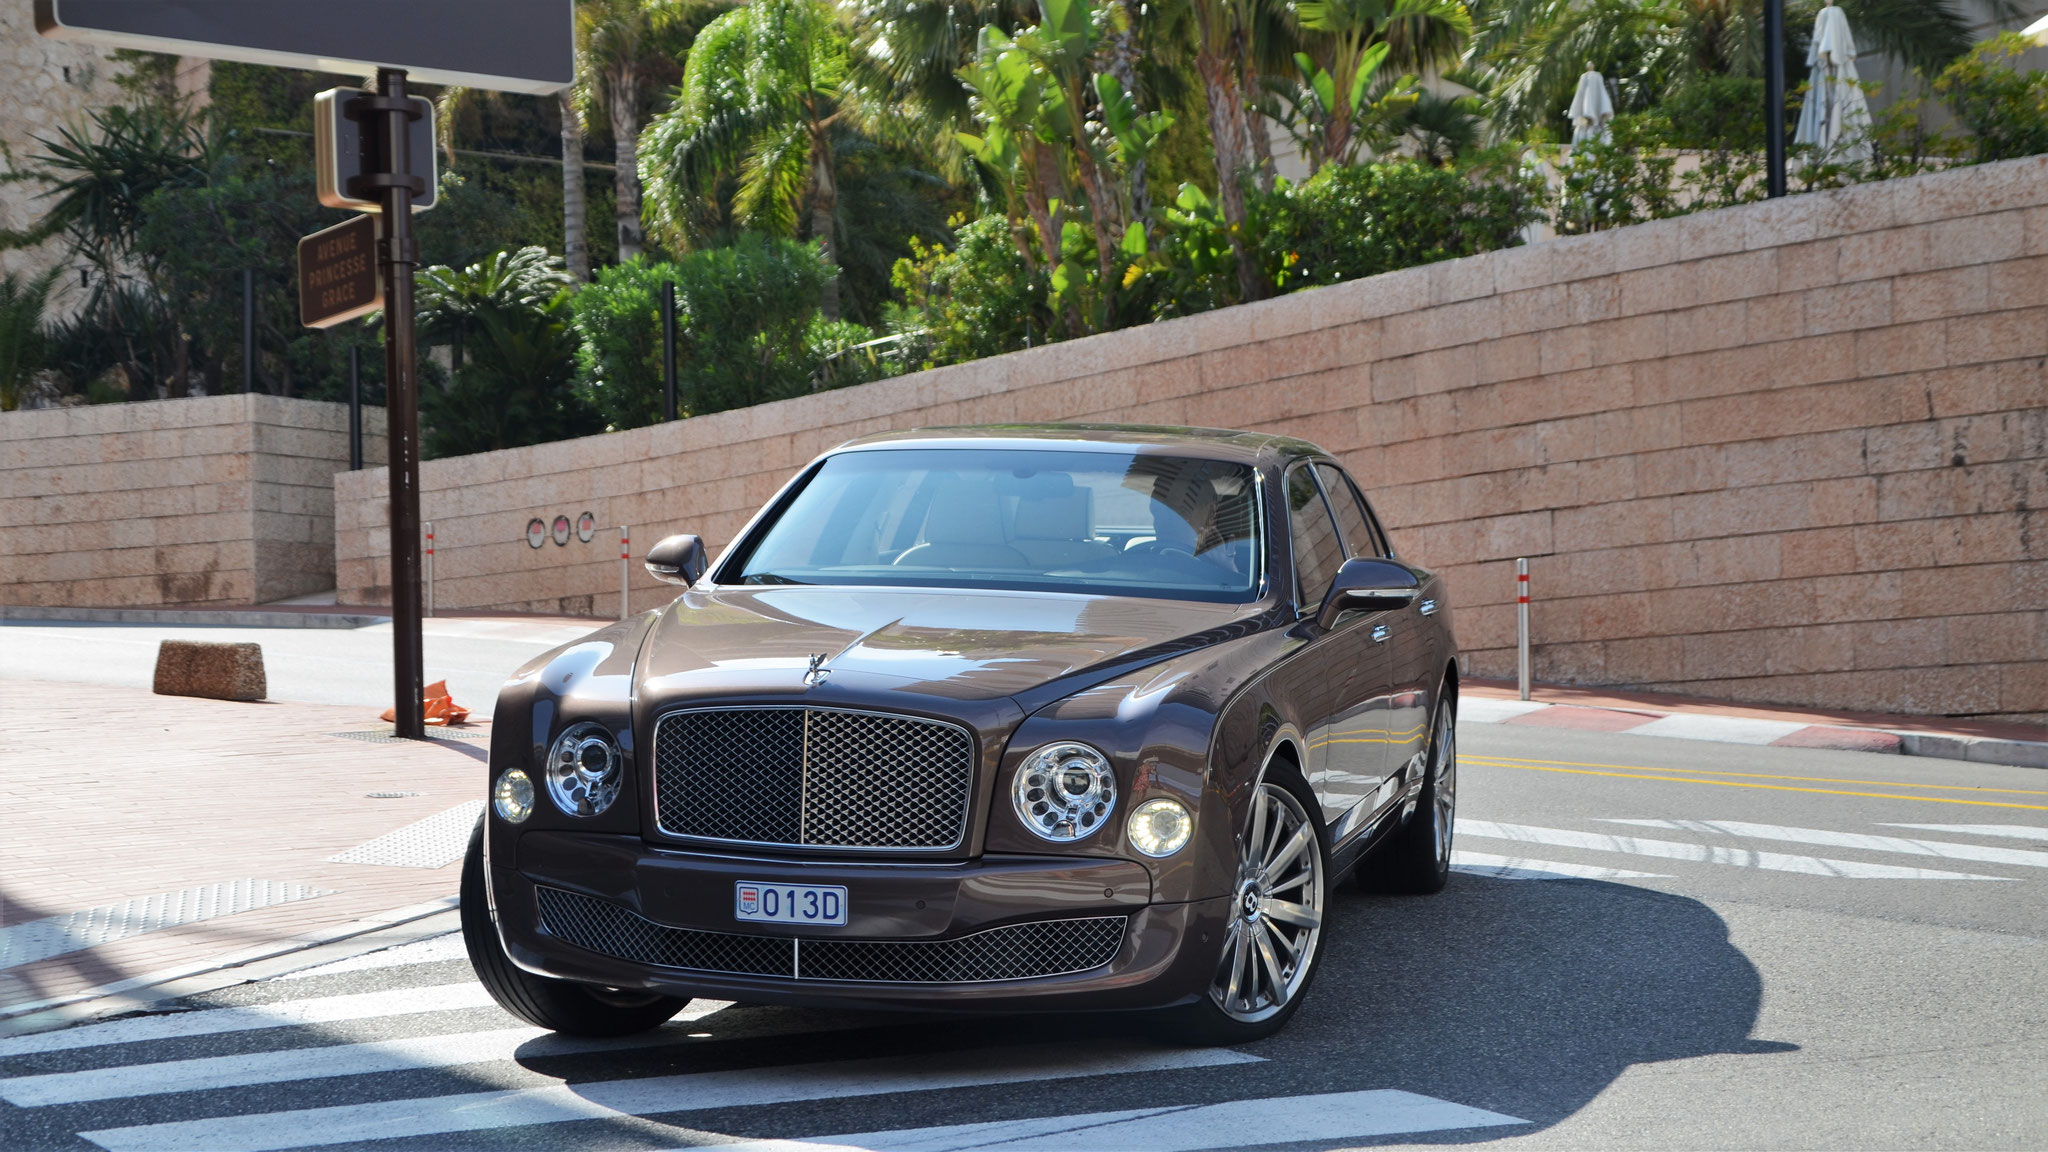 Bentley Mulsanne -013D (MC)